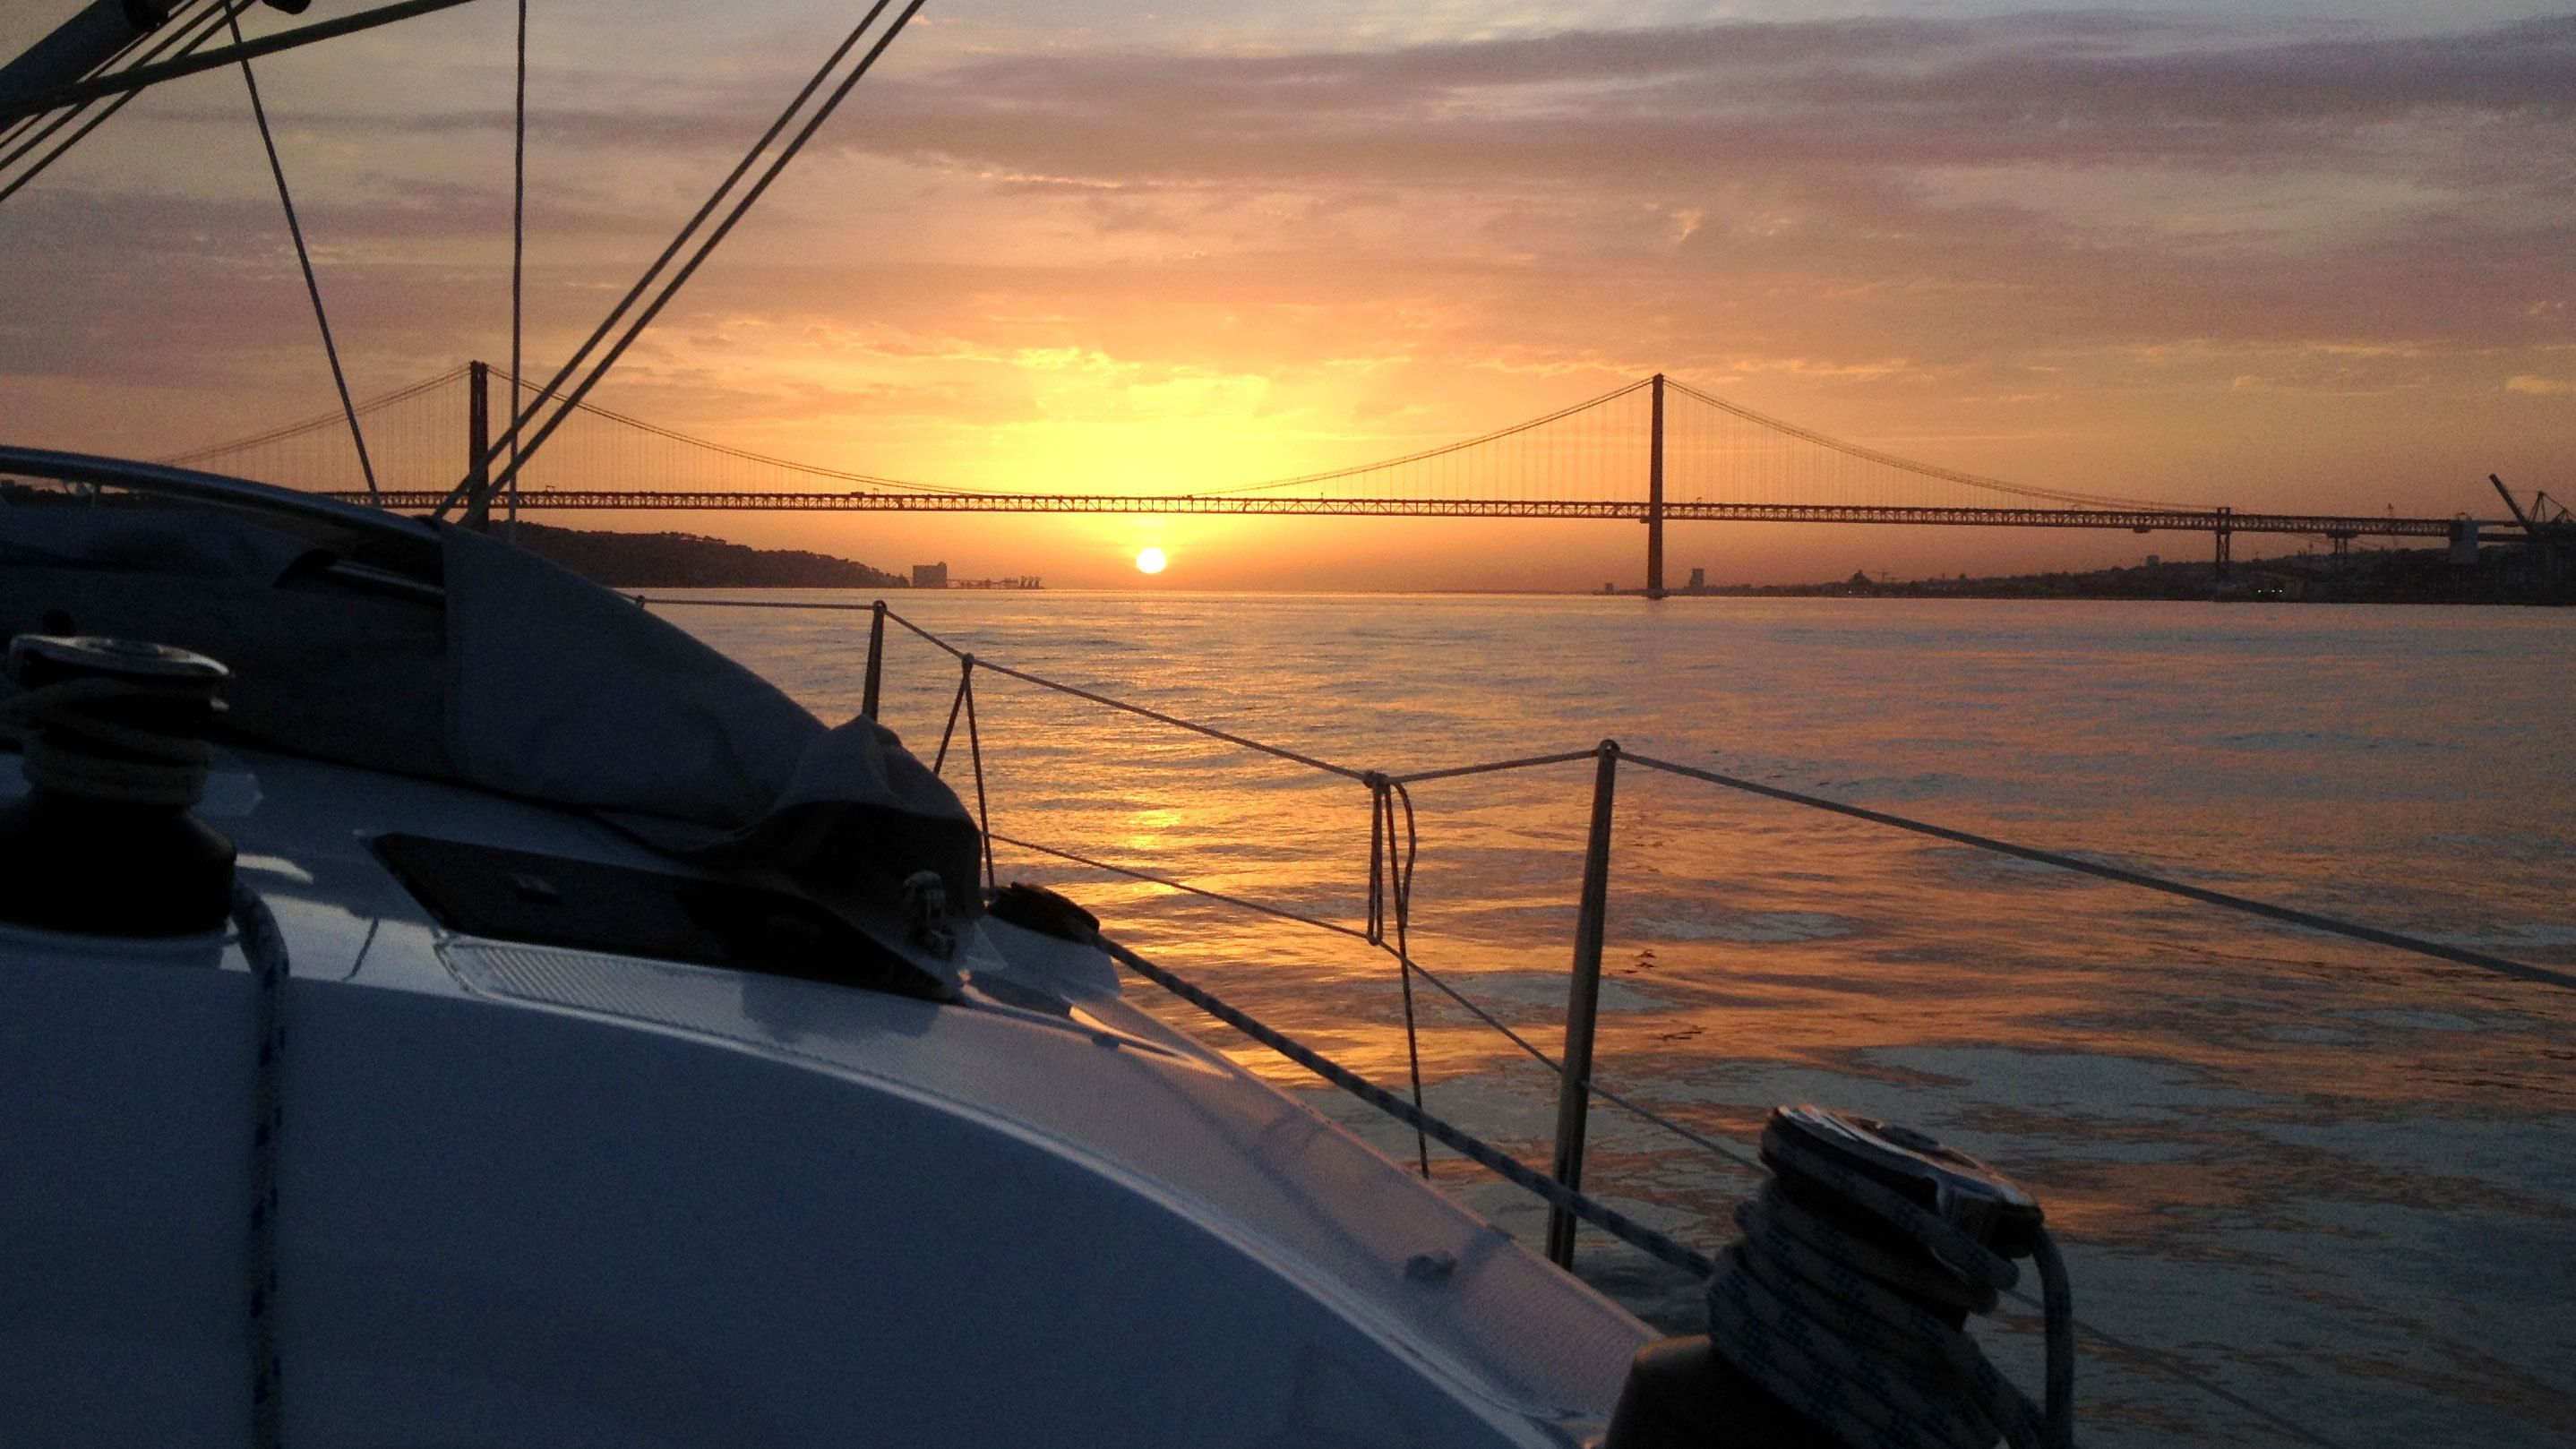 Sunset over bow of boat in Lisbon